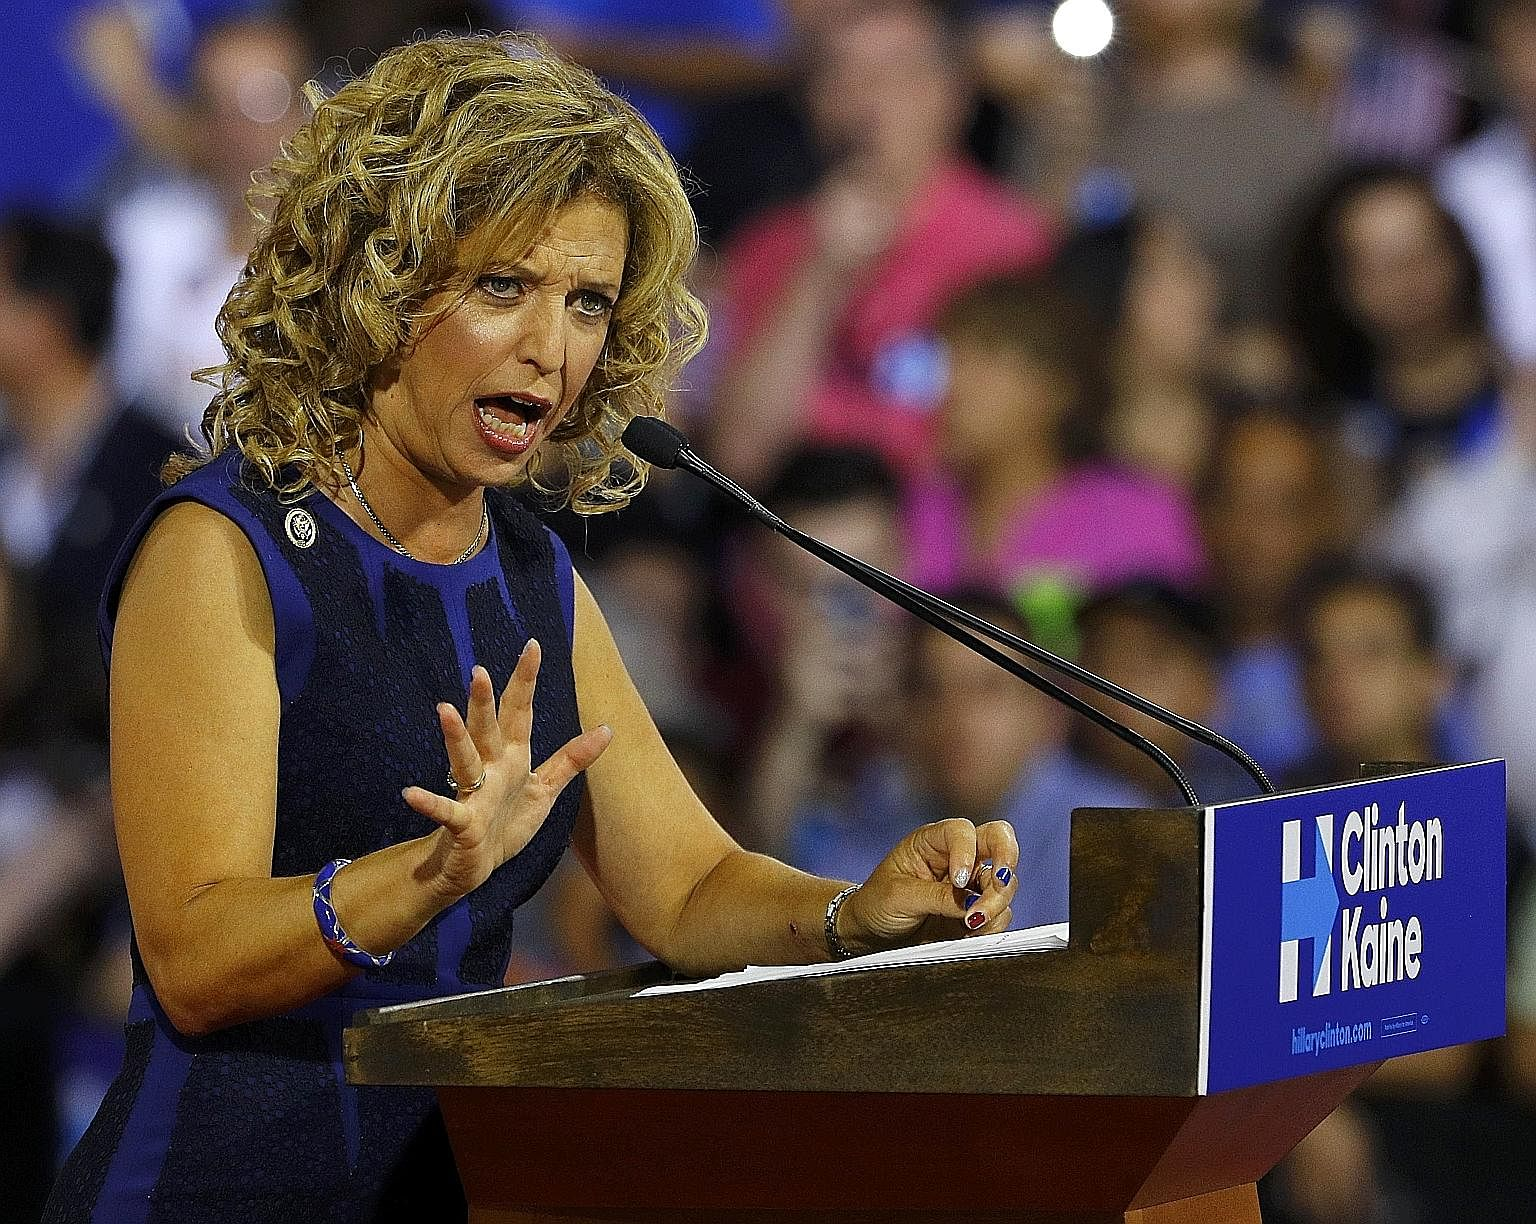 Evidence of the Democratic Party apparatus' attempt to damage Mrs Hillary Clinton's rival Bernie Sanders was embarrassing enough to force DNC chair Debbie Wasserman Schultz (above) to resign. An anti-Trump protester at the Republican National Convent